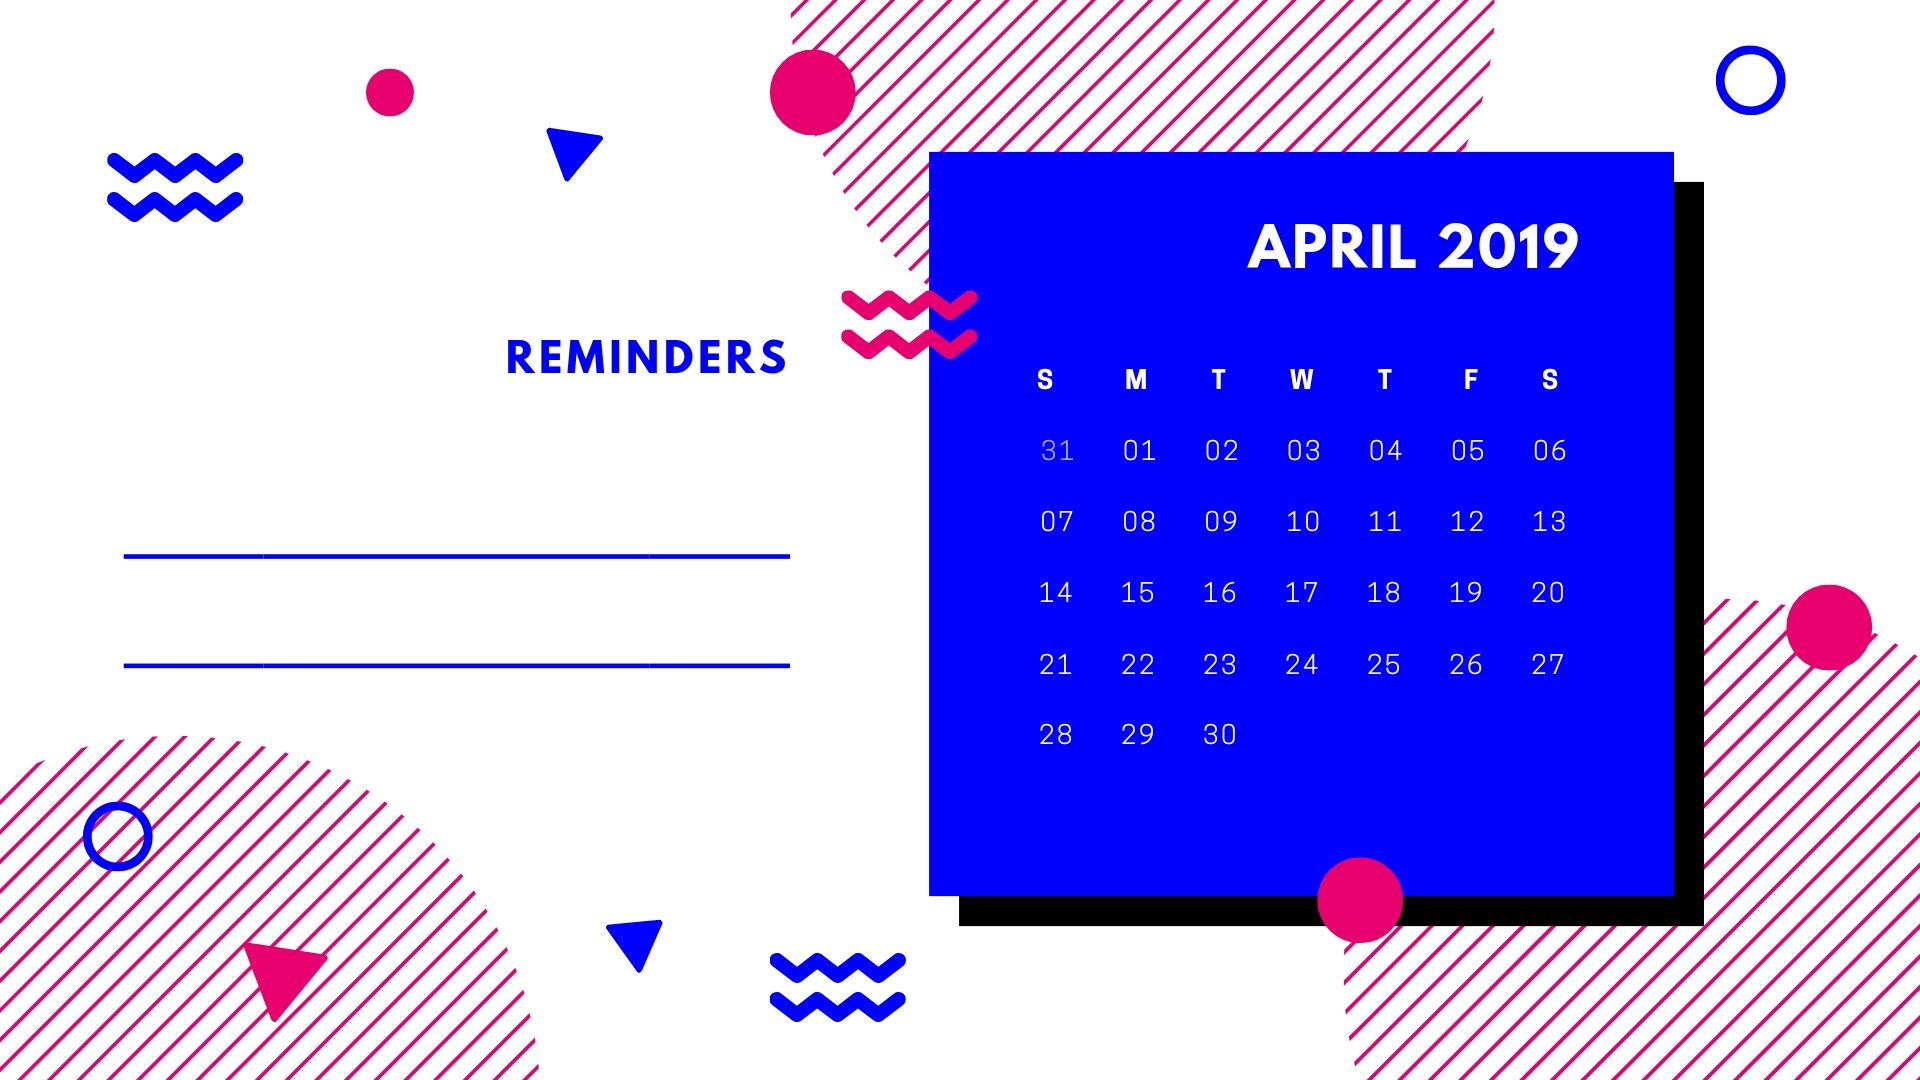 April 2019 Calendar Desktop Wallpapers